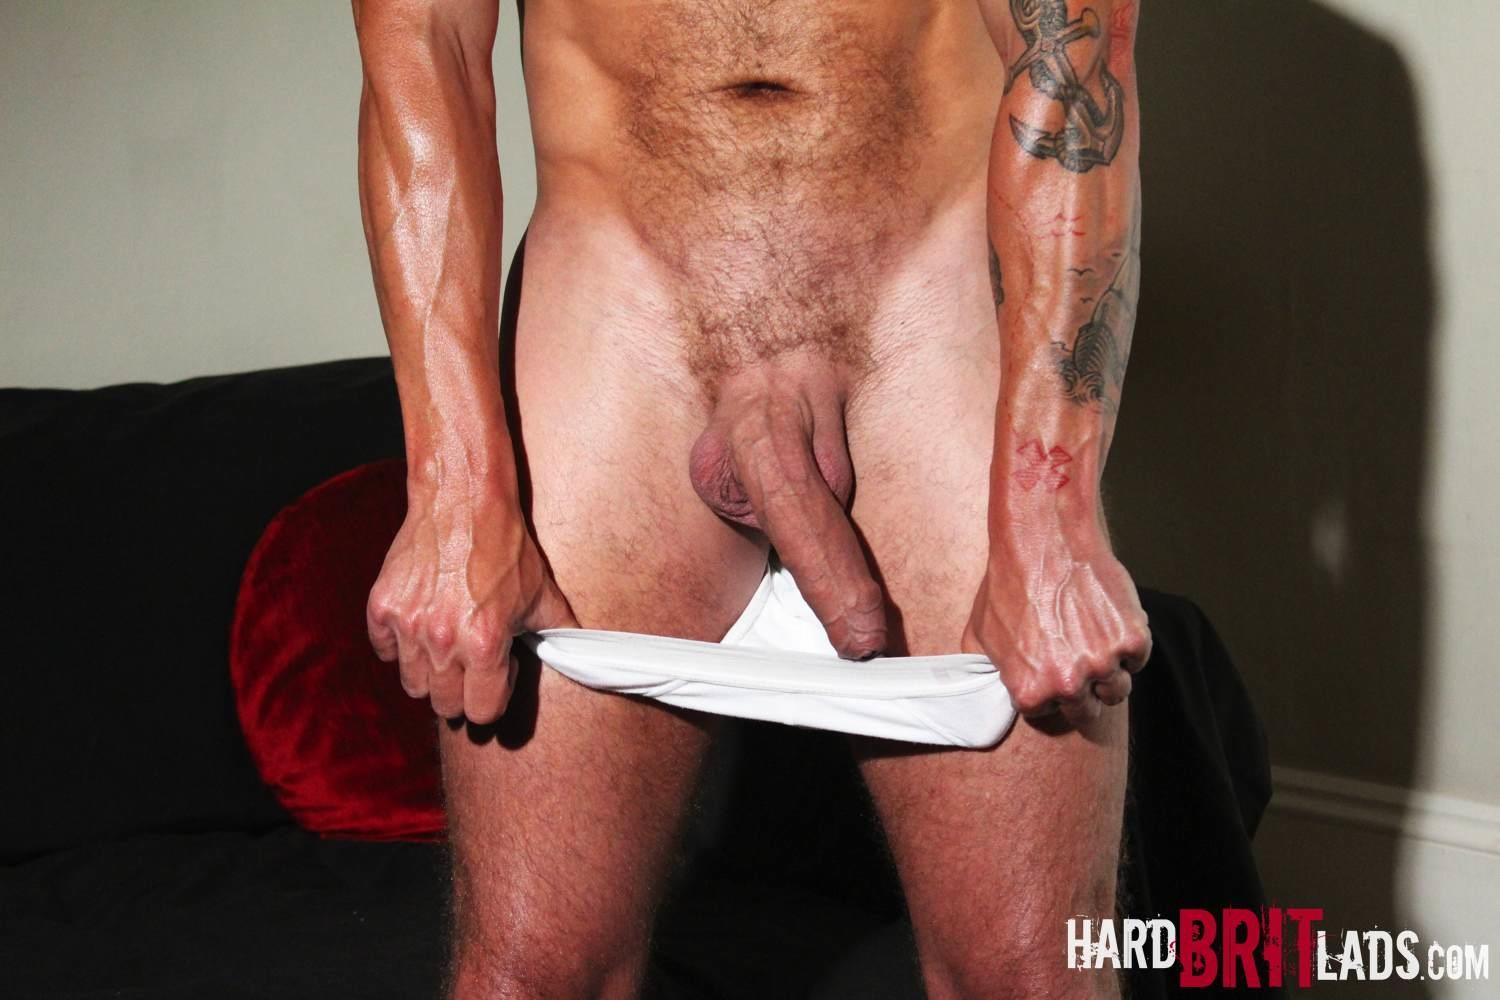 Hard Brit Lads Sam Porter British Muscle Hunk With A big Uncut cock Amateur Gay Porn 07 Tatted Muscle British Hunk Sam Porter Jerking His Big Uncut Cock